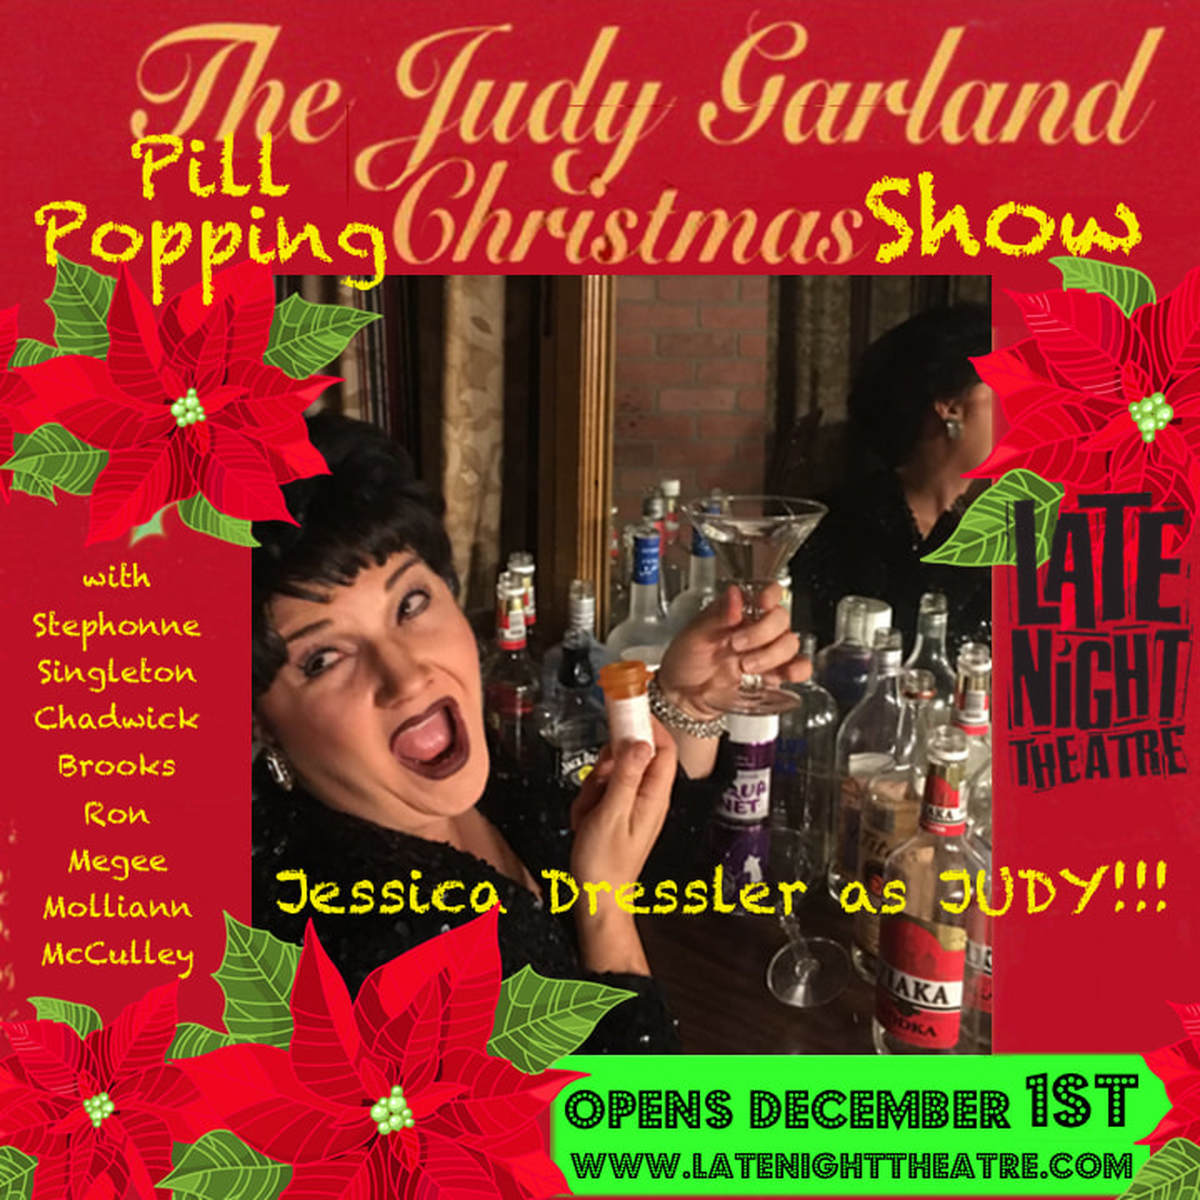 THE JUDY GARLAND PILL POPPING CHRISTMAS SHOW - LATE NIGHT THEATRE